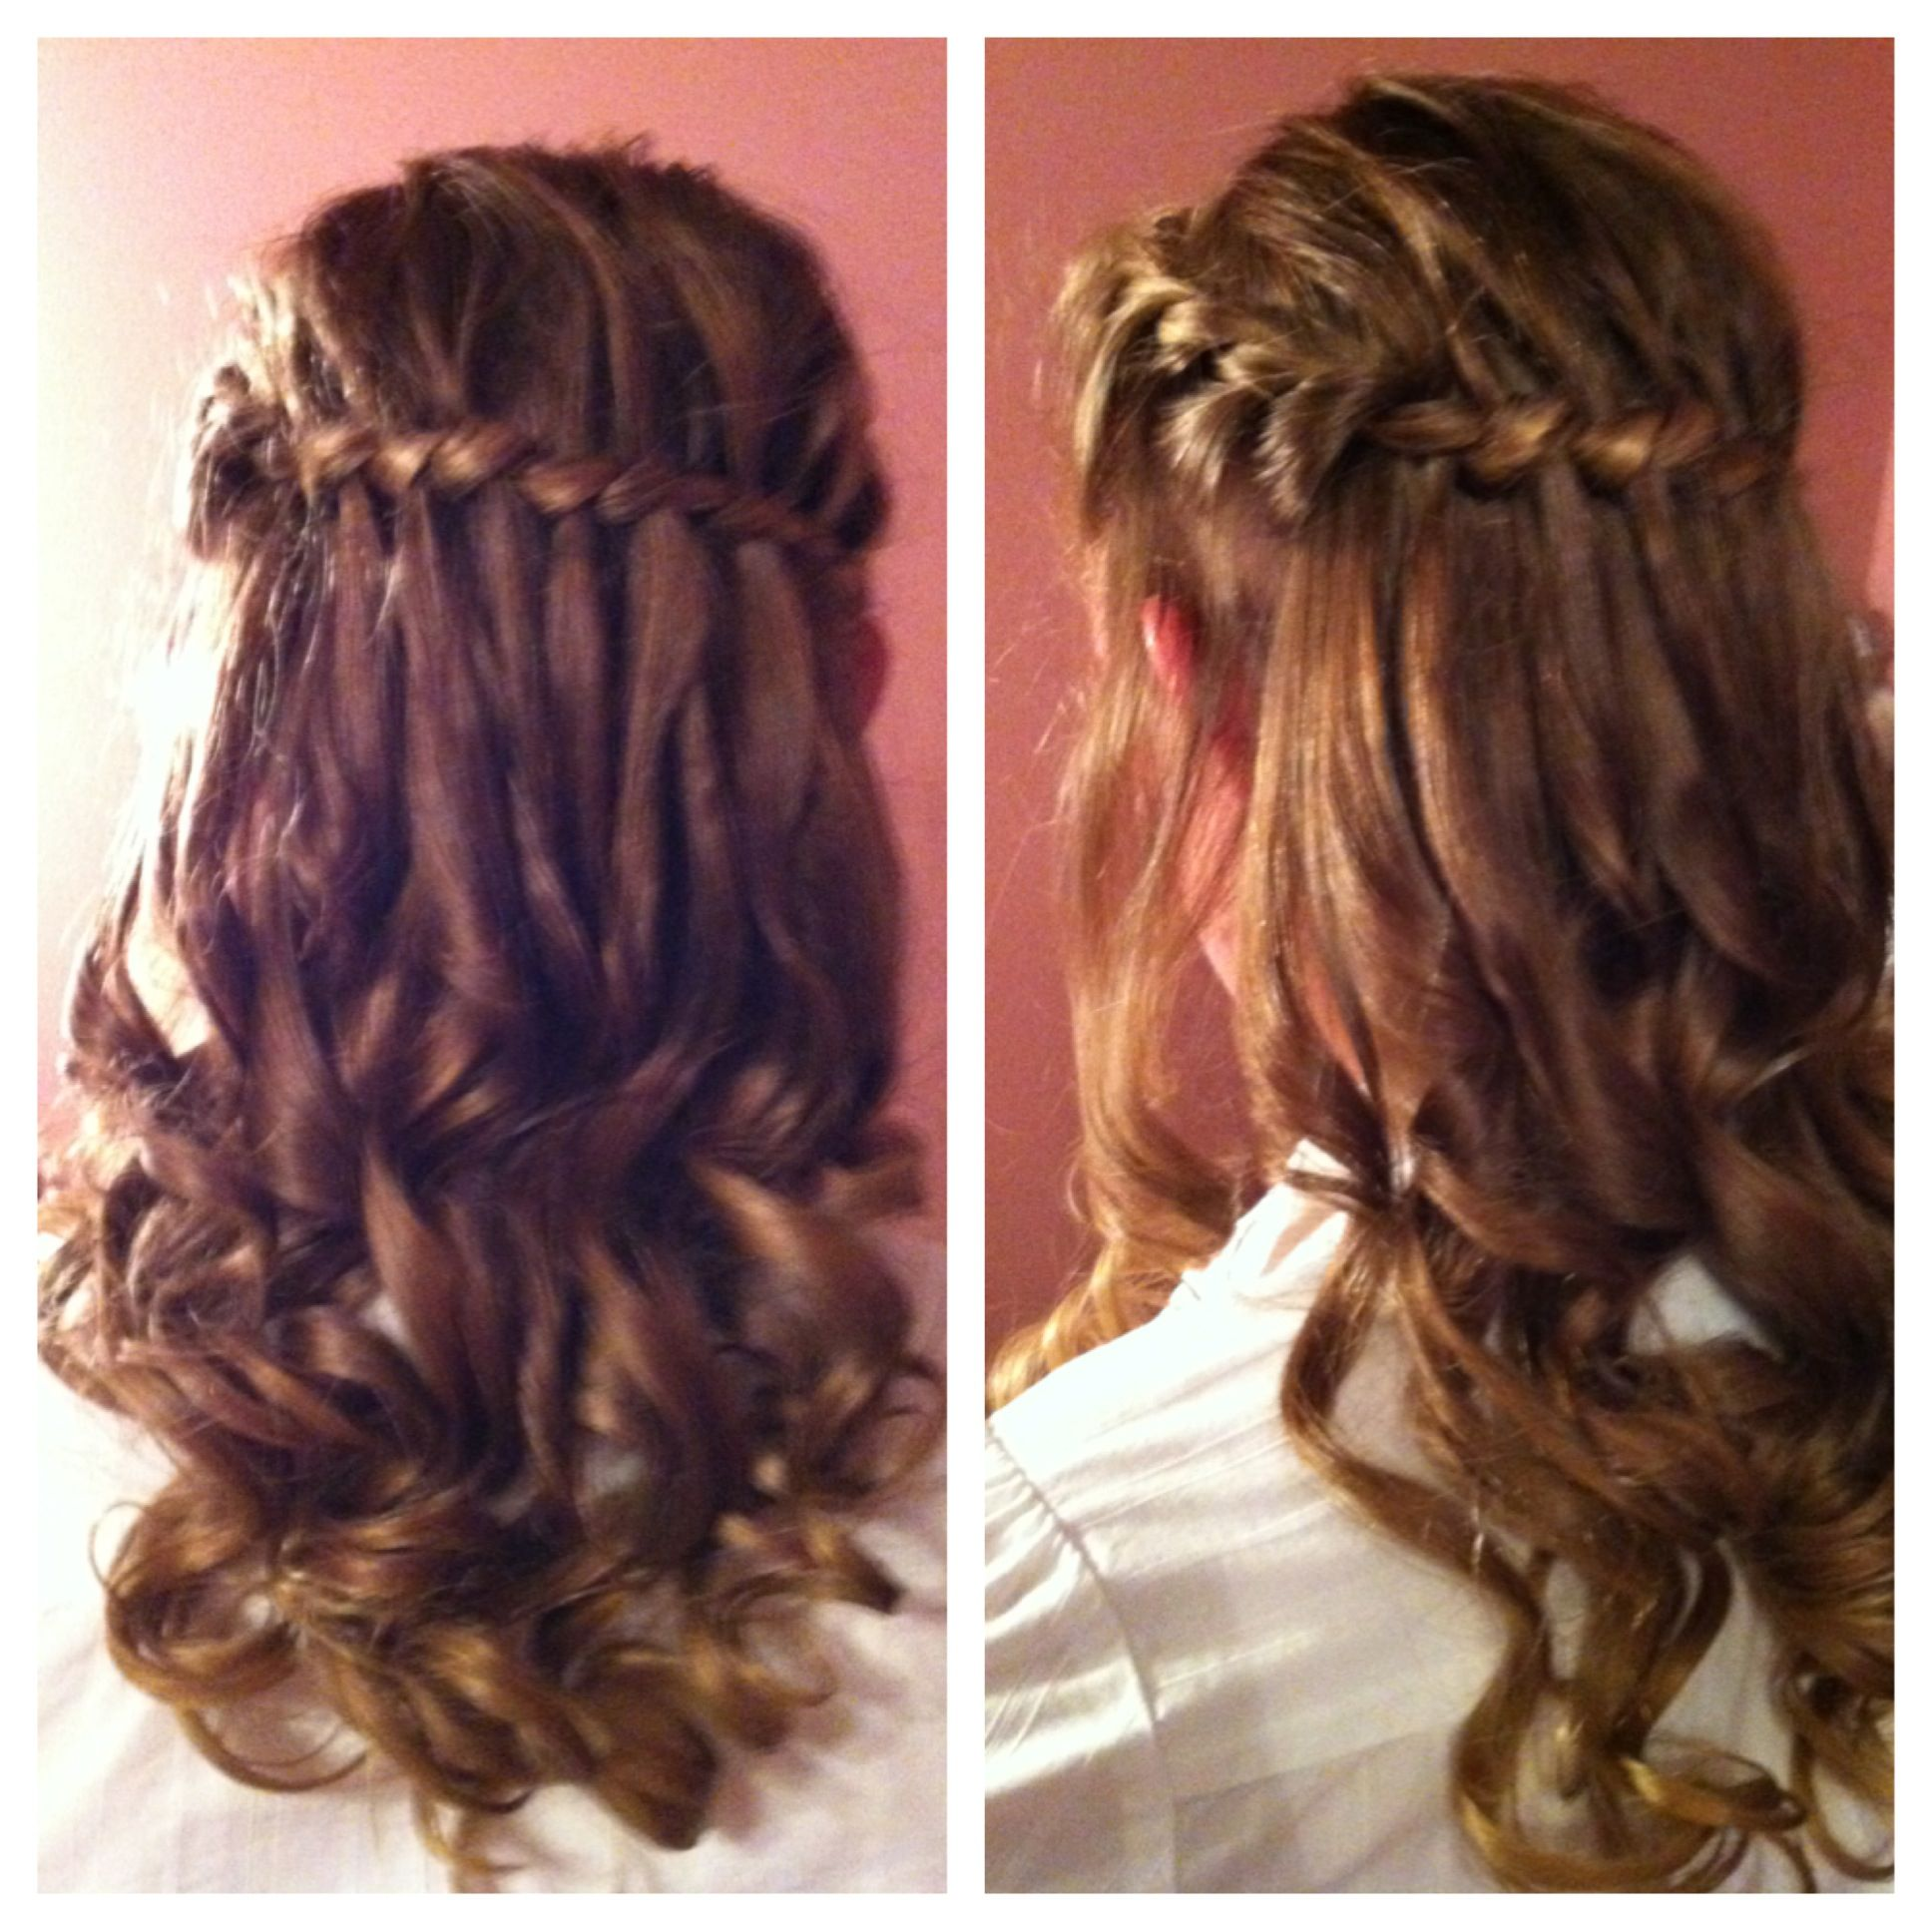 Cute Hairstyle For A Dance Twist And Curls HairMakeup - Hairstyle for valentine's dance